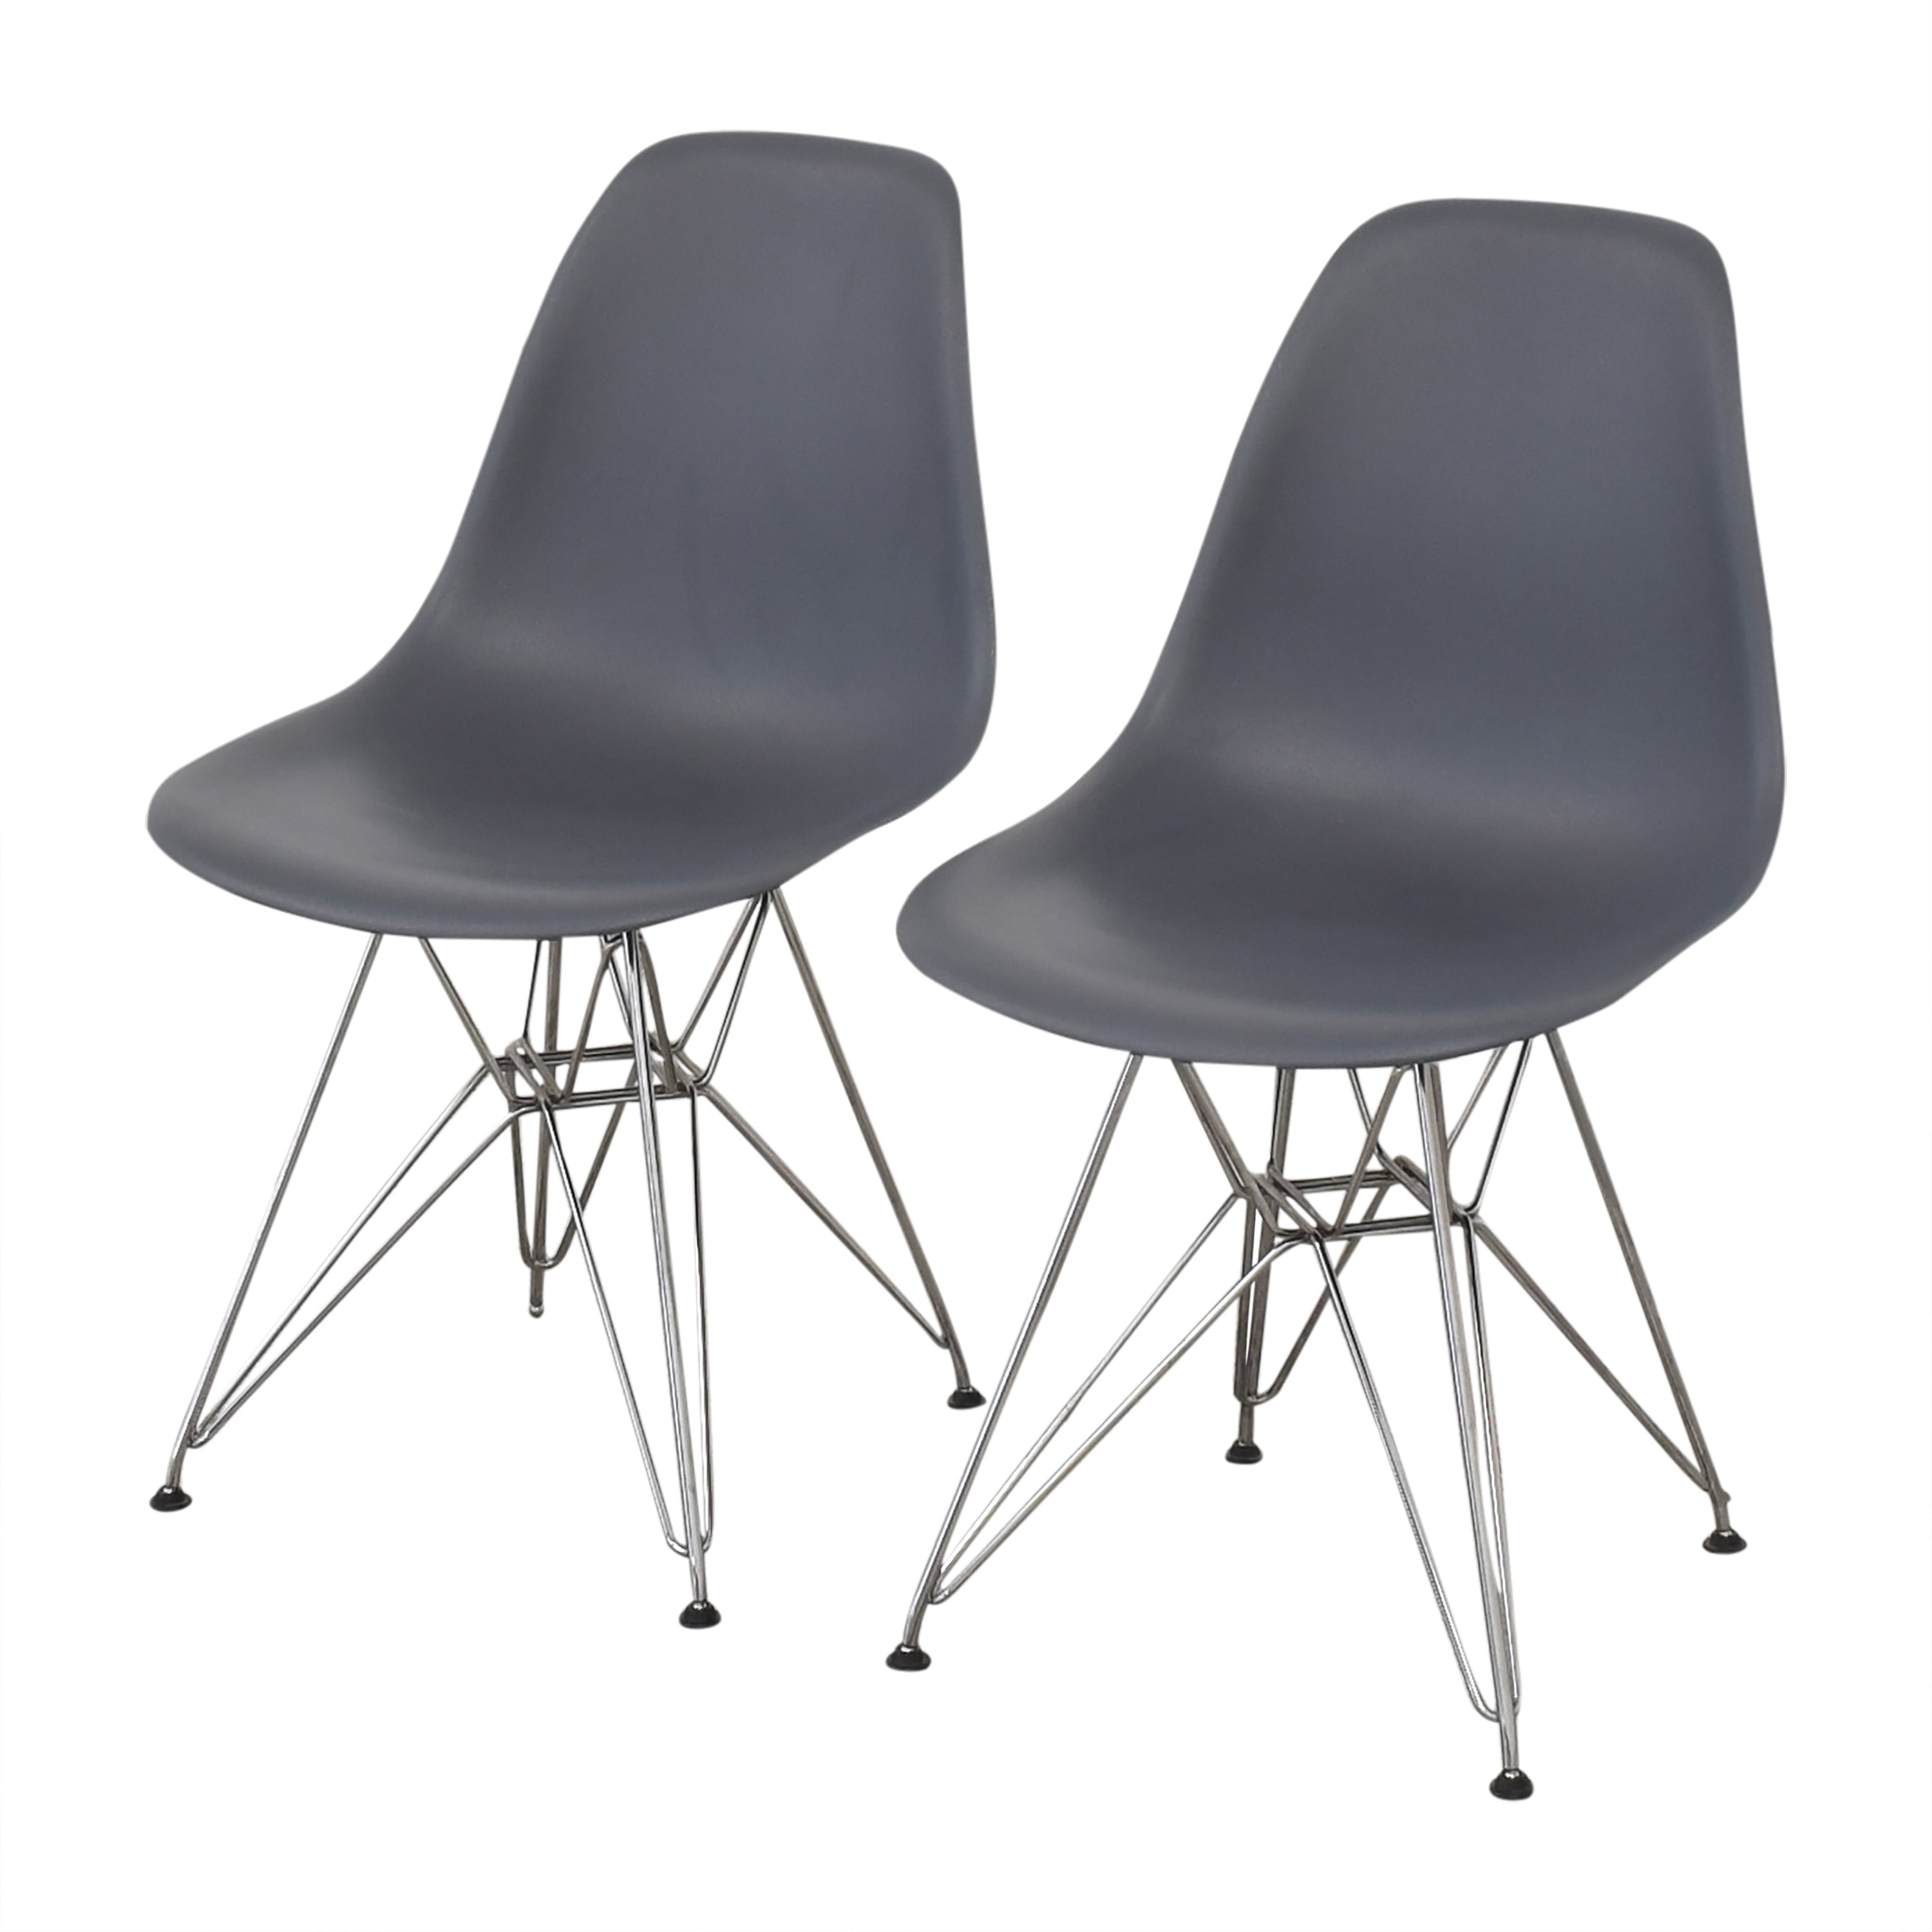 Design Within Reach Design Within Reach Herman Miller Eames Molded Side Chairs price